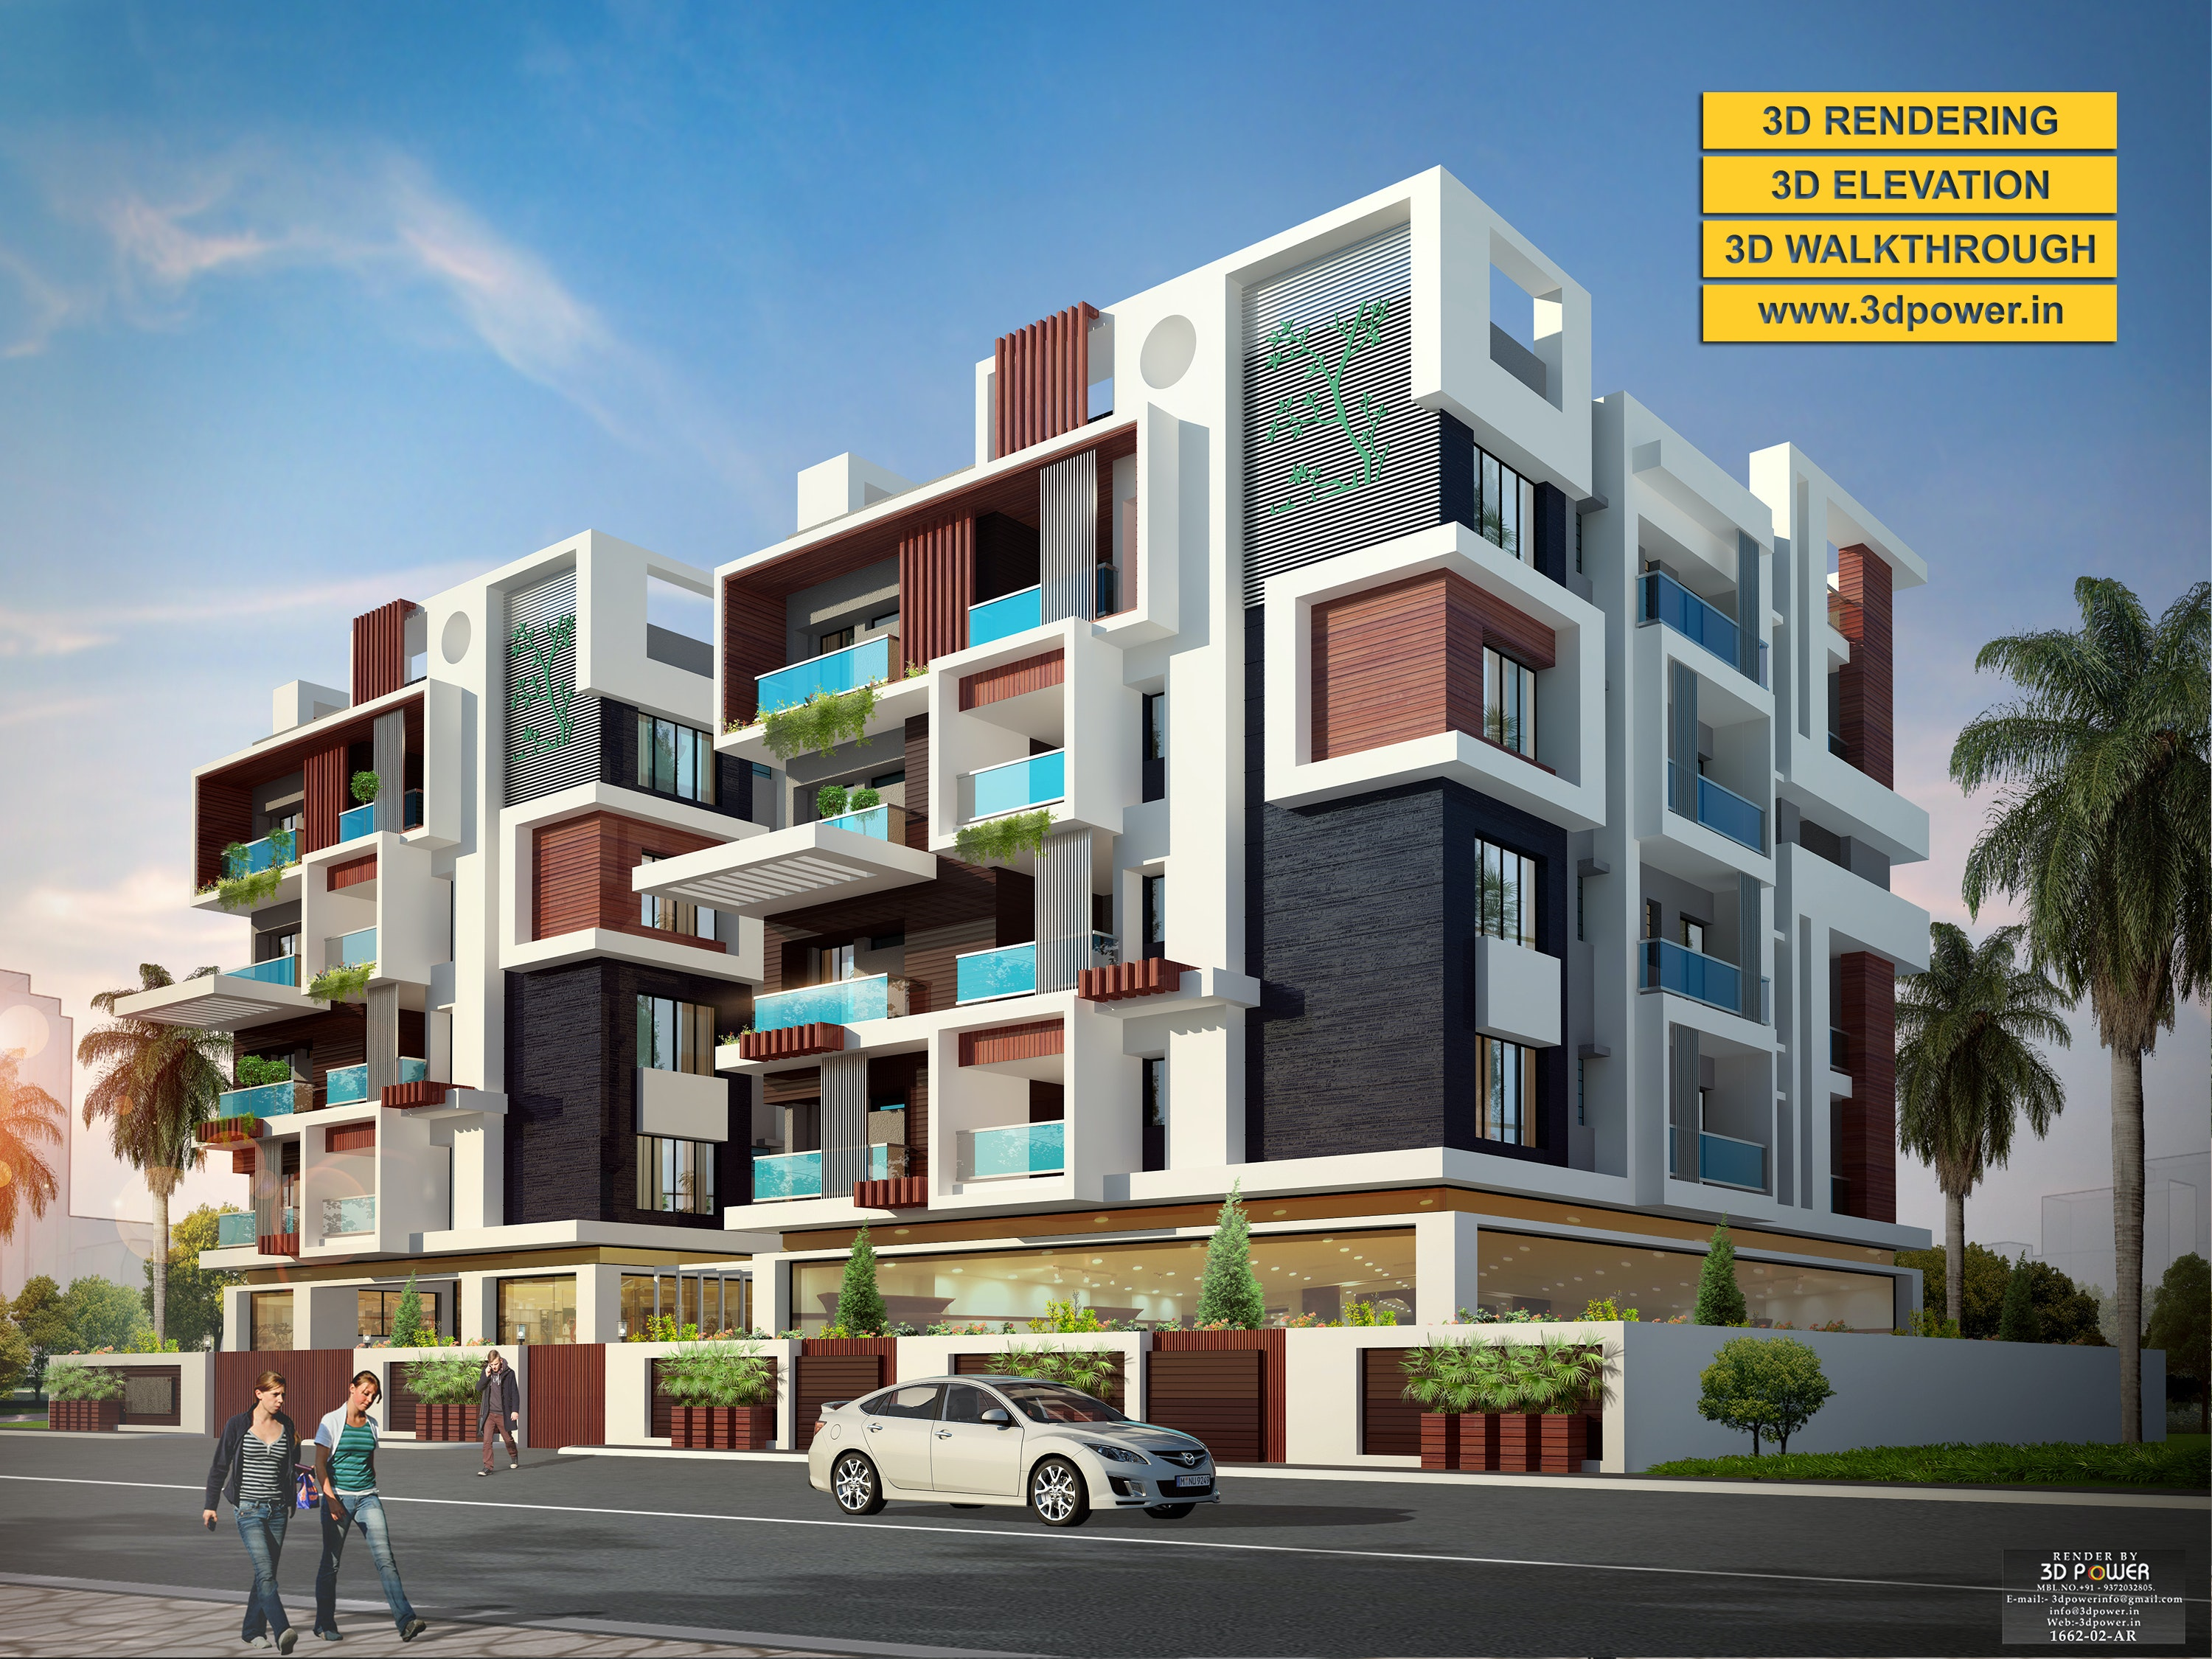 3D Apartment Exterior Day U0026 Night Rendering And Elevation Design By 3D Power  On Architizer